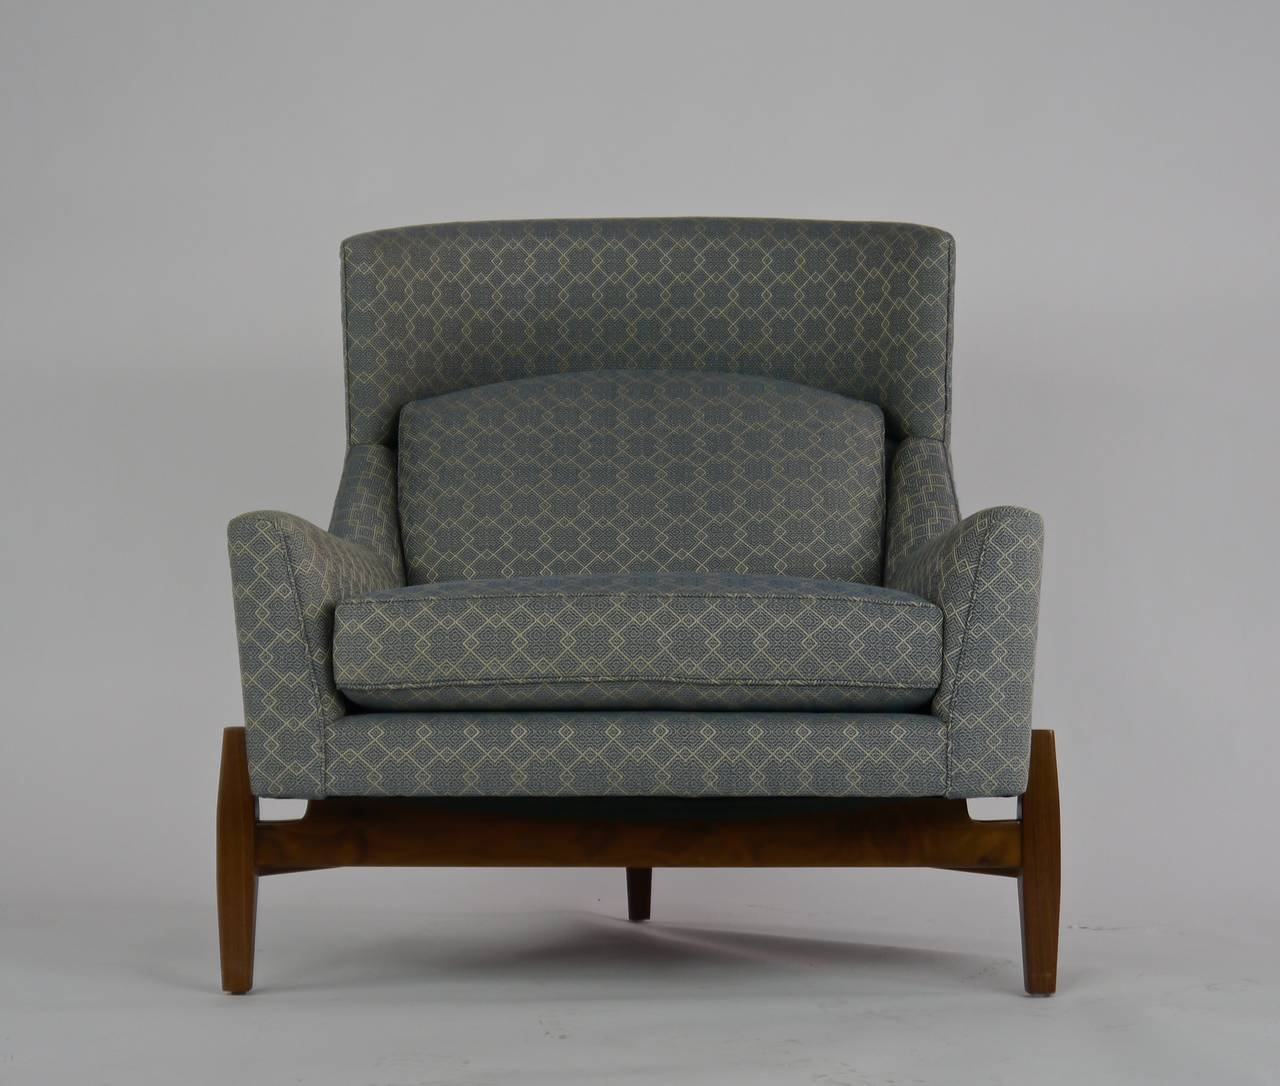 big chair with ottoman costco recliner rare jens risom quotbig quot at 1stdibs